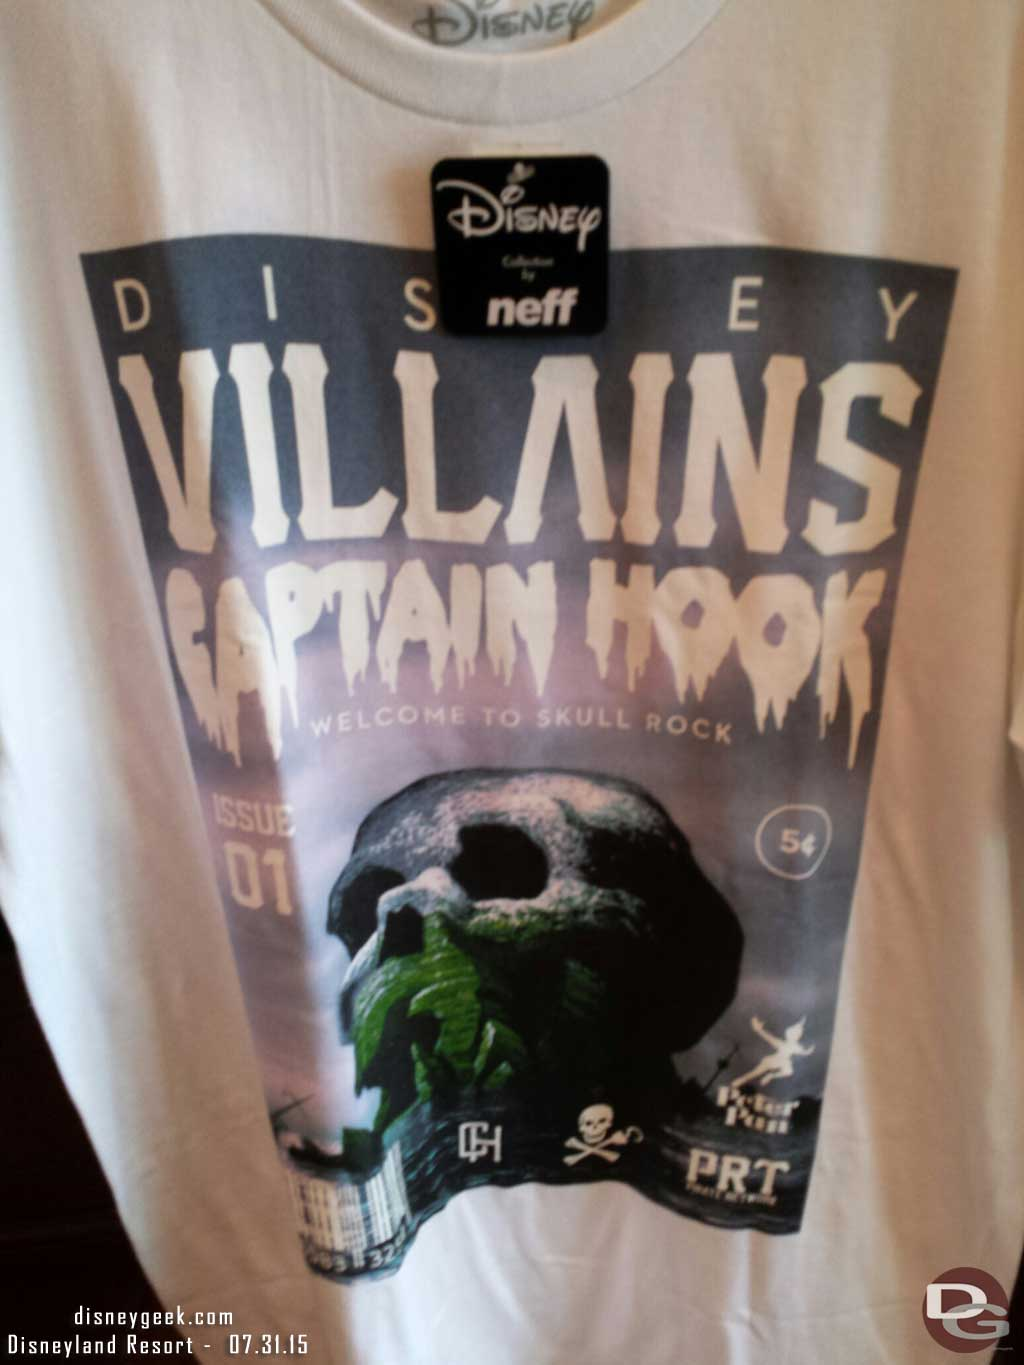 Disney Villains Captain Hook Skull Rock shirt in Elias & Co #BuenaVistaStreet